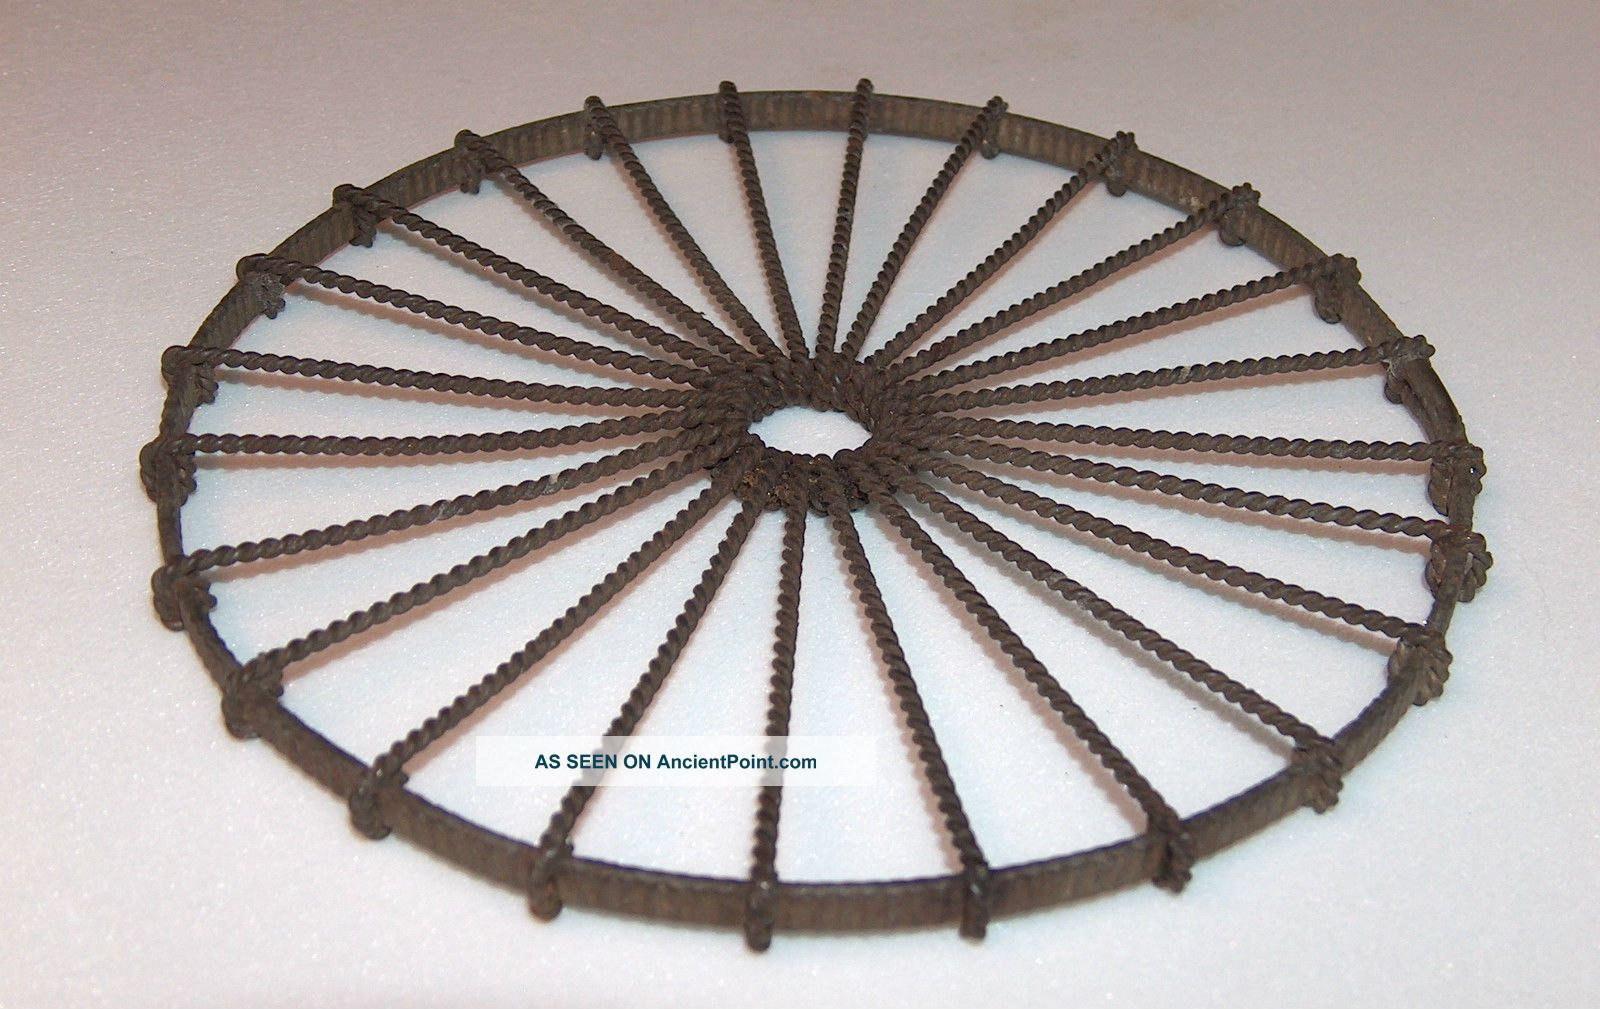 Antique Early American Hand Made Wheel Form Twisted Wire Hot Plate Trivet 6 Inch Trivets photo